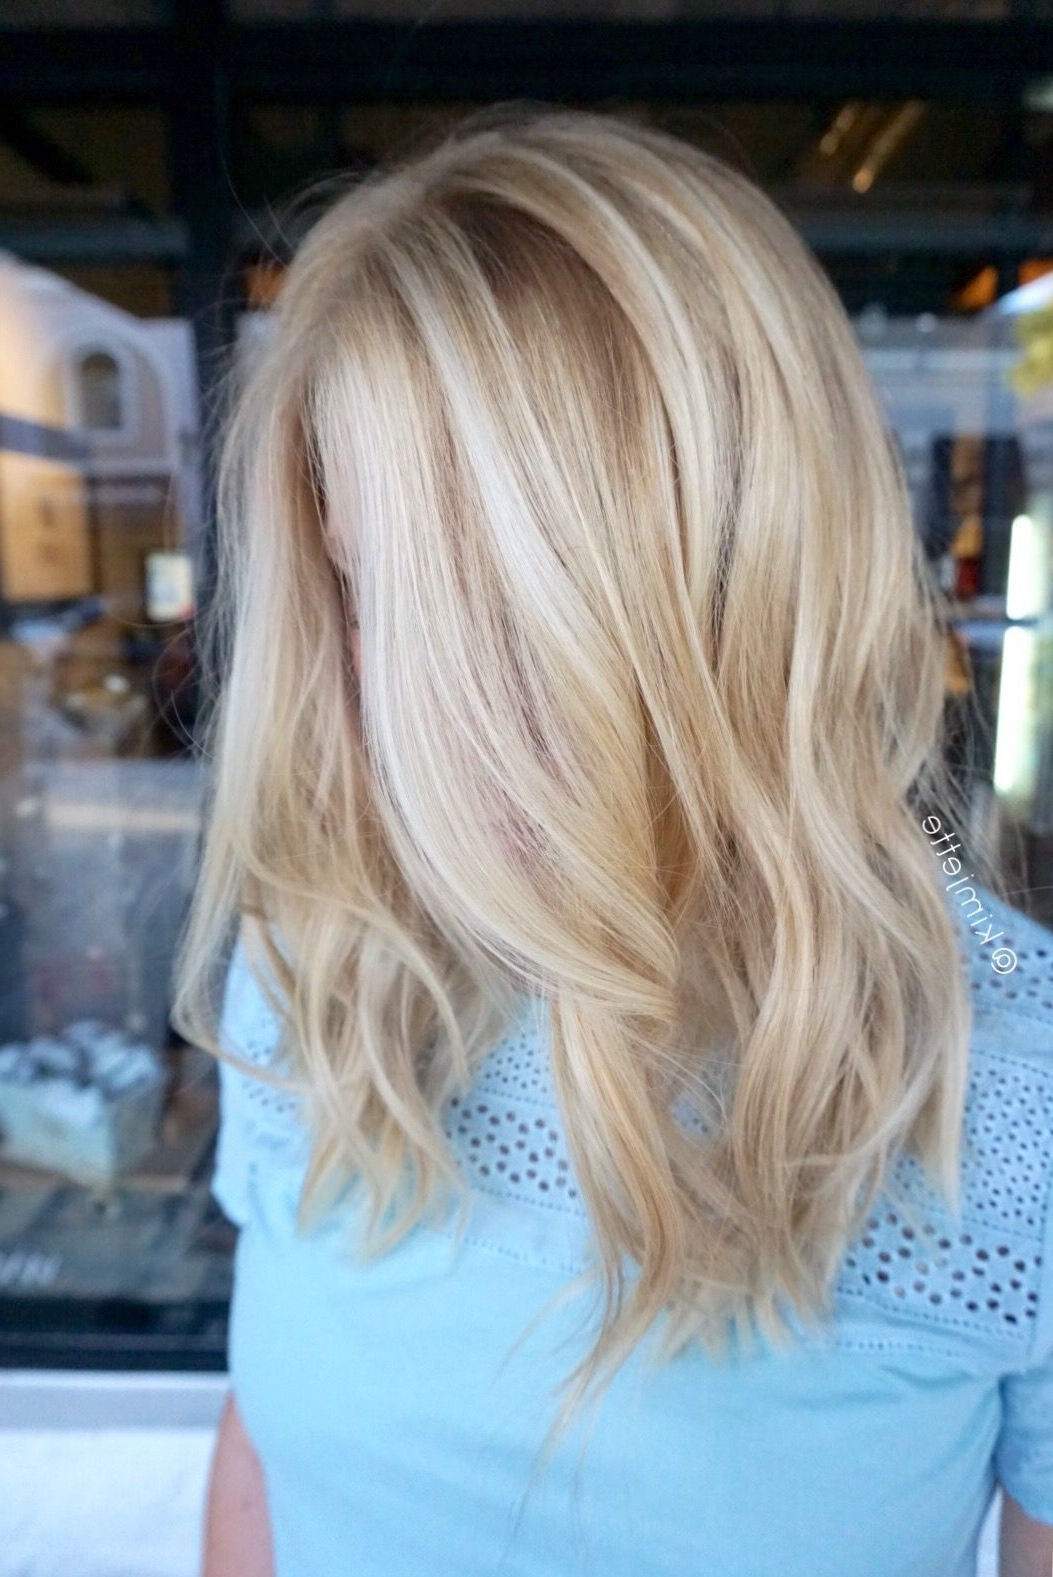 Short Curly Weave Regarding Famous Soft Flaxen Blonde Curls Hairstyles (View 18 of 20)